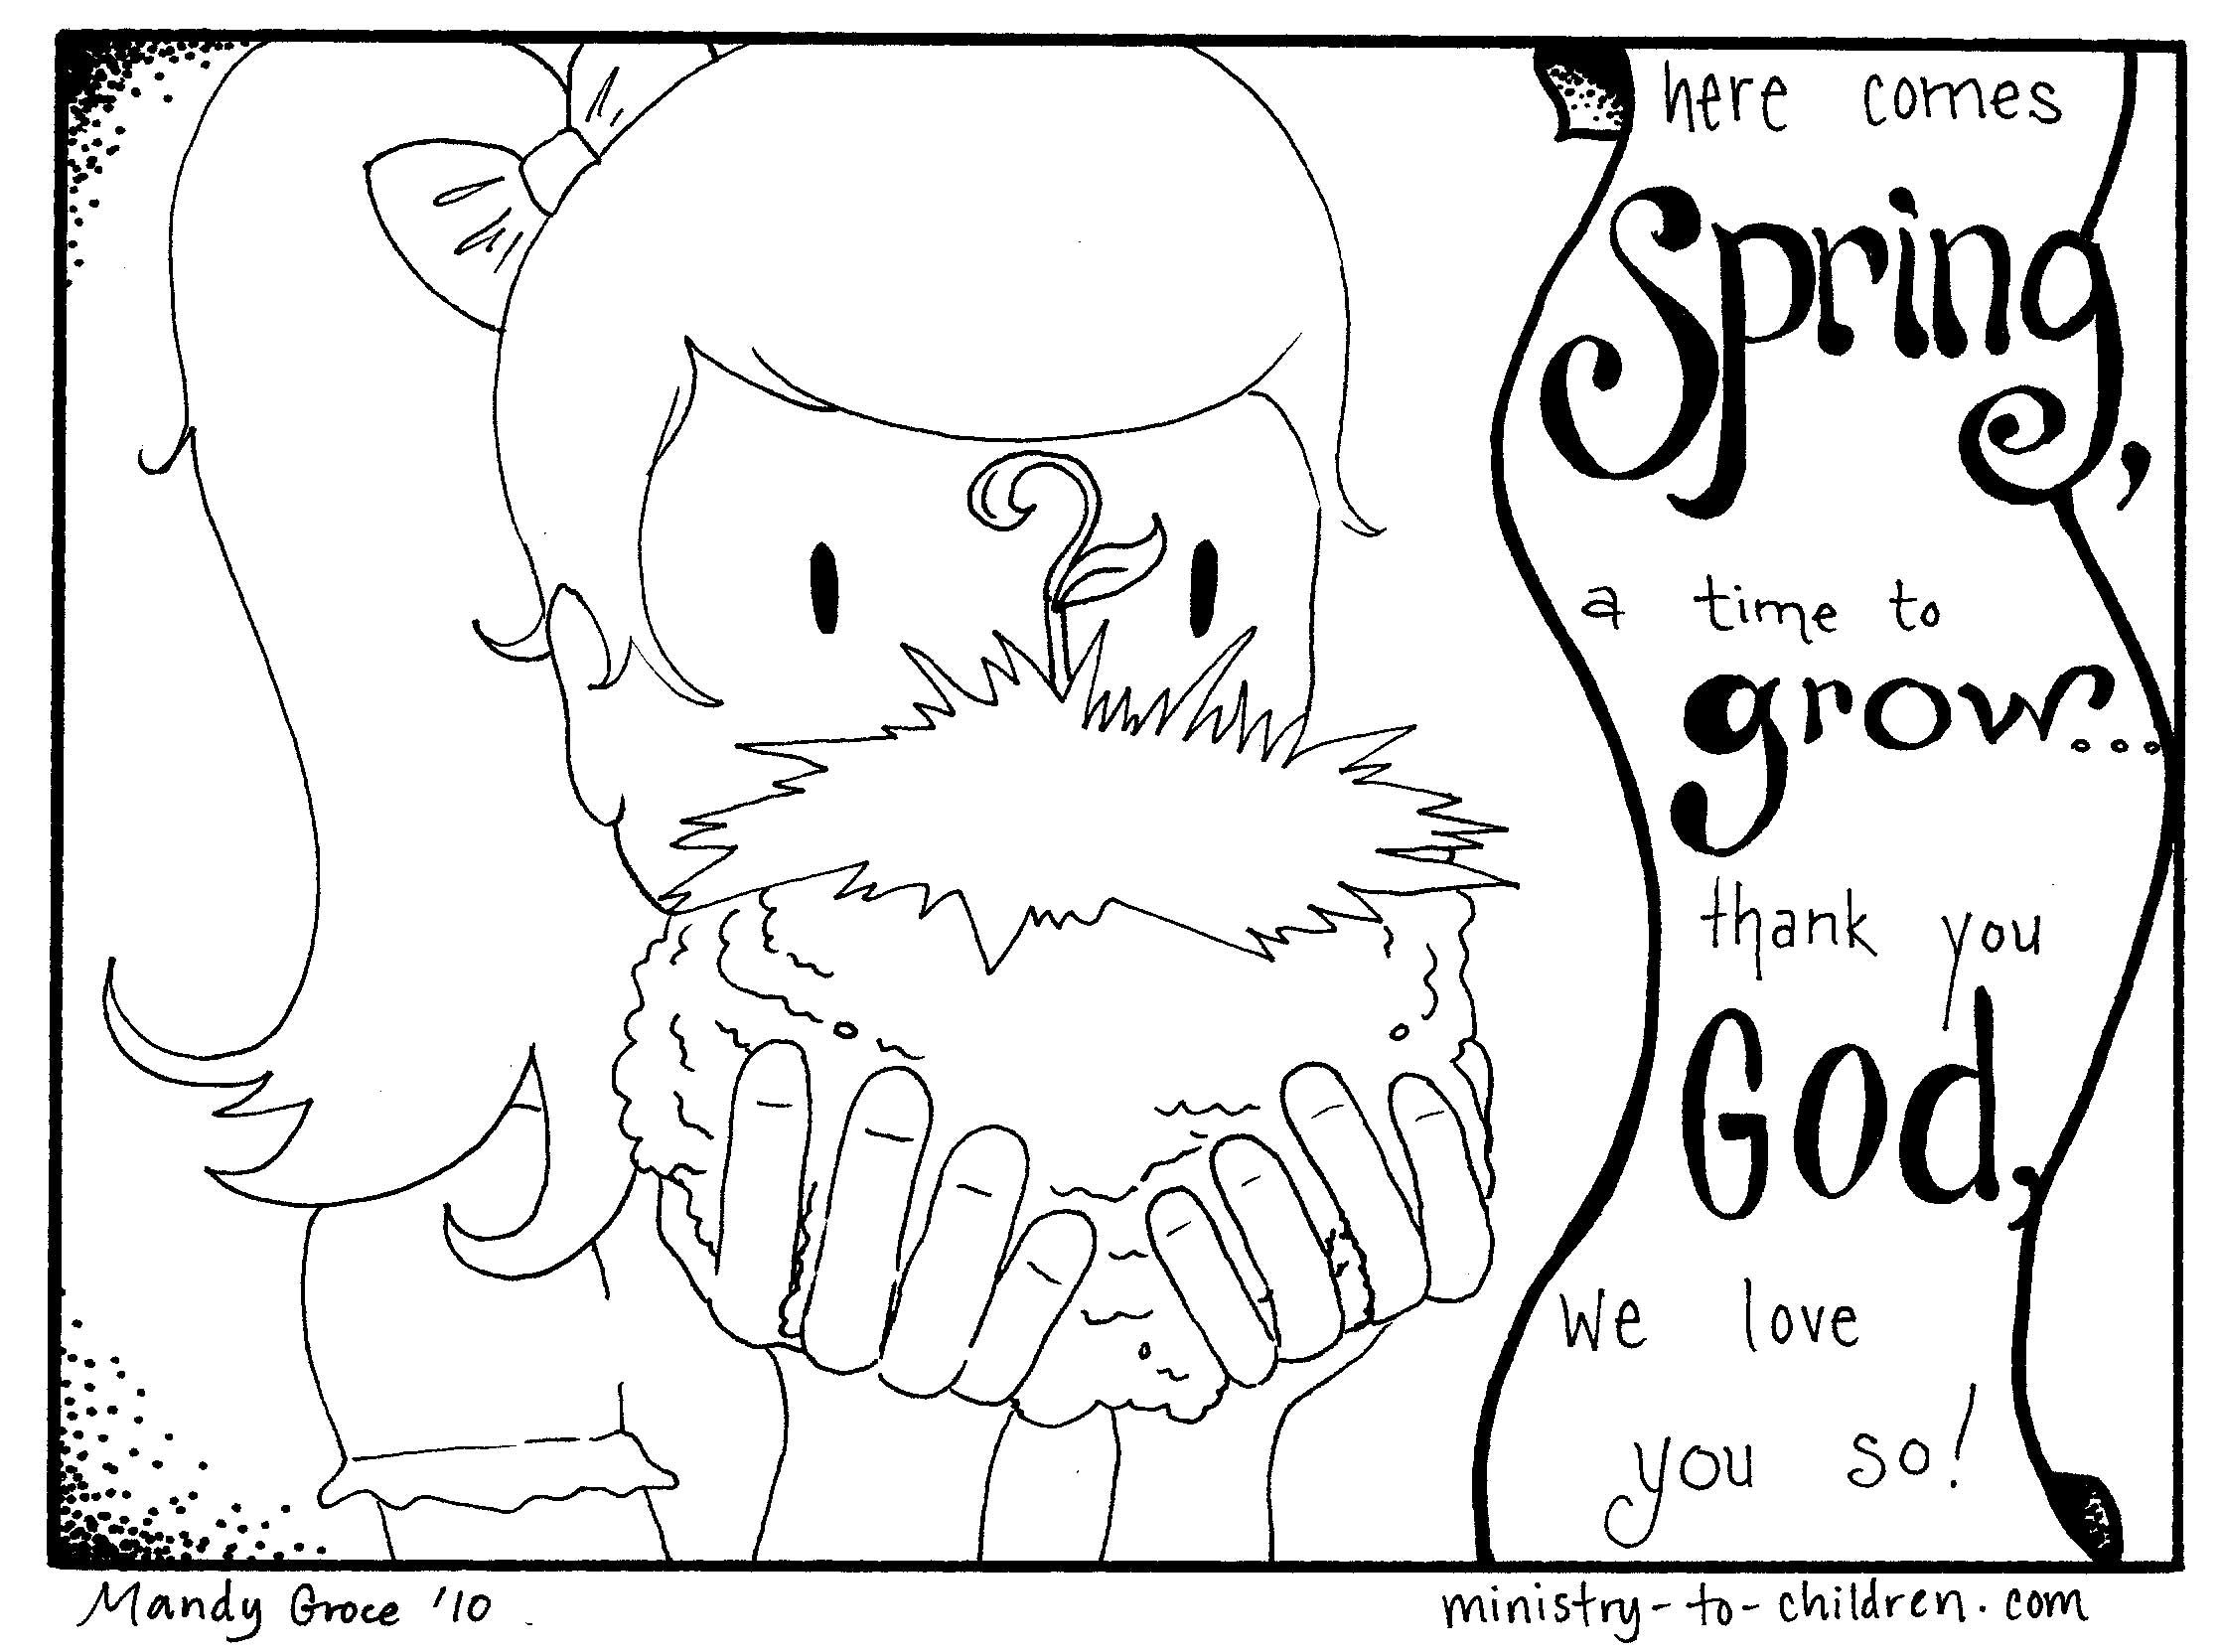 Spring coloring pages pinterest - Spring Coloring Page